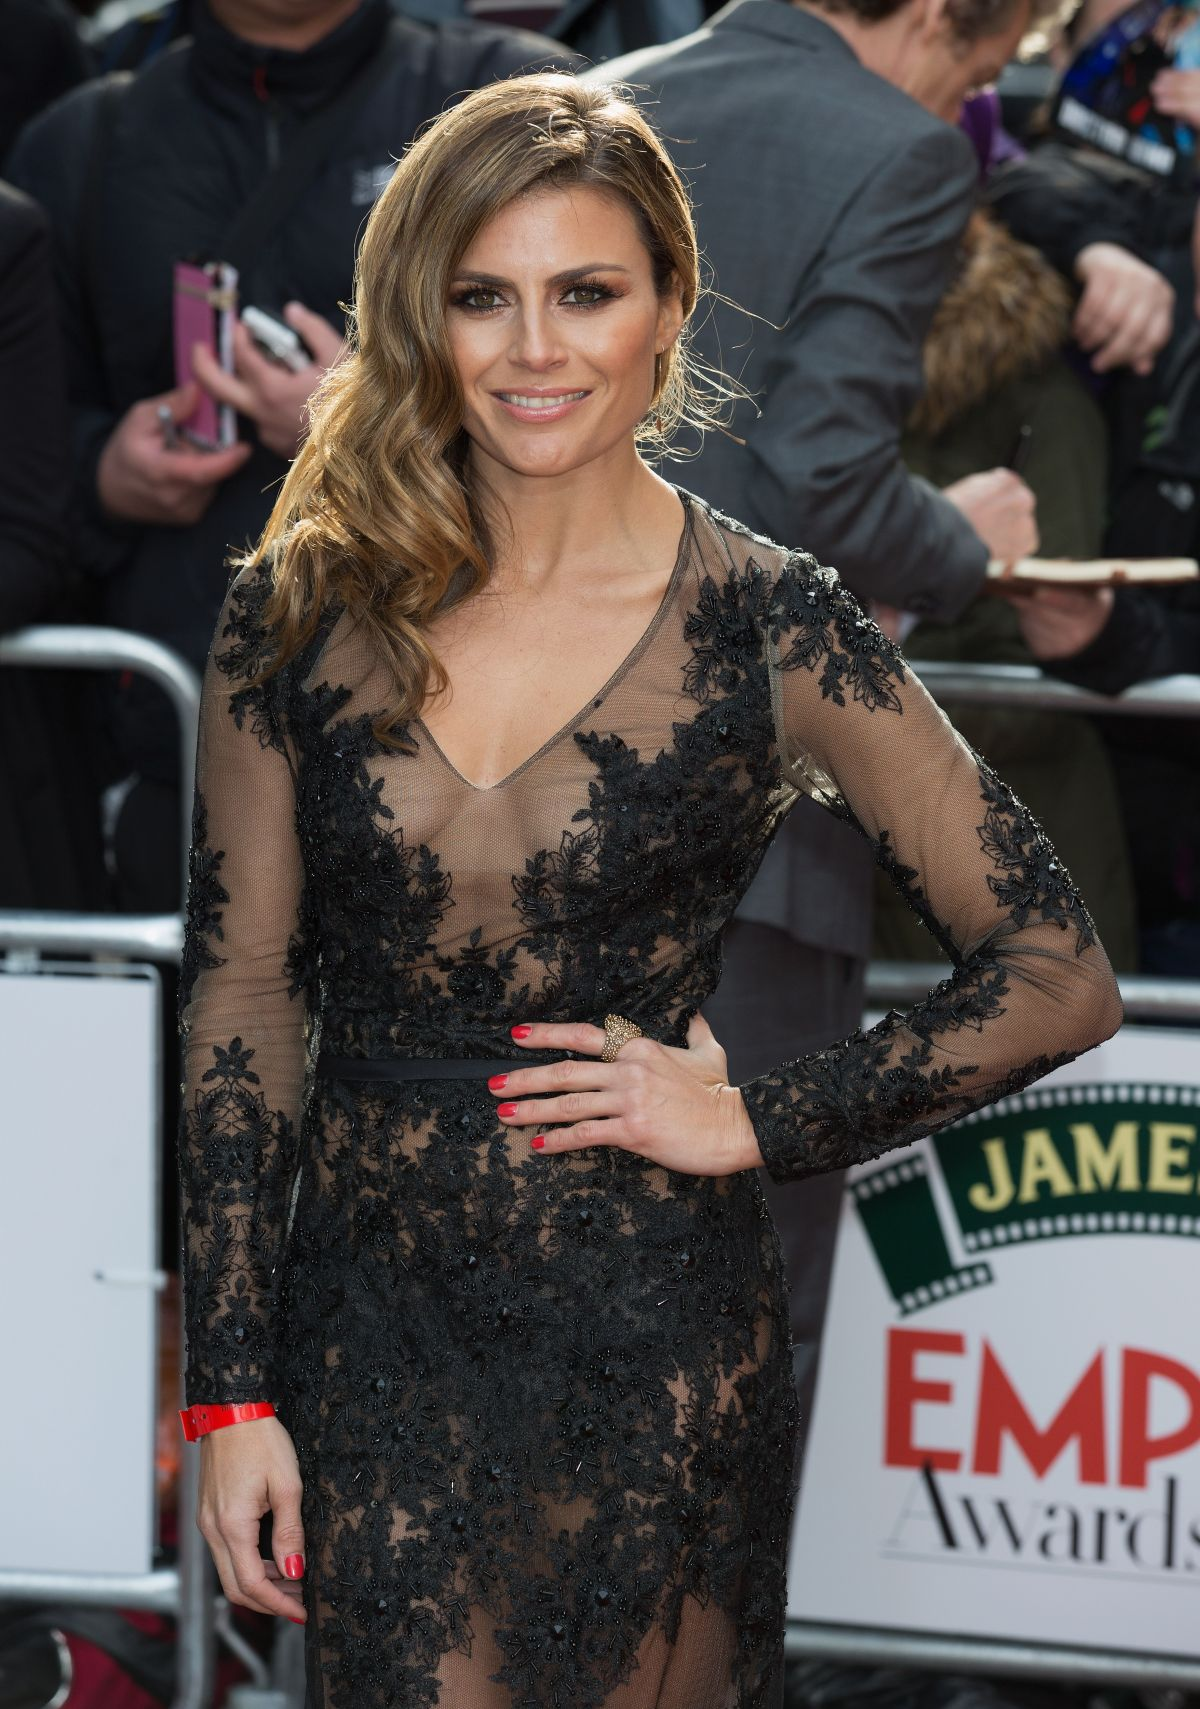 ZOE HARDMAN at The Jameson Empire Awards 2015 in London